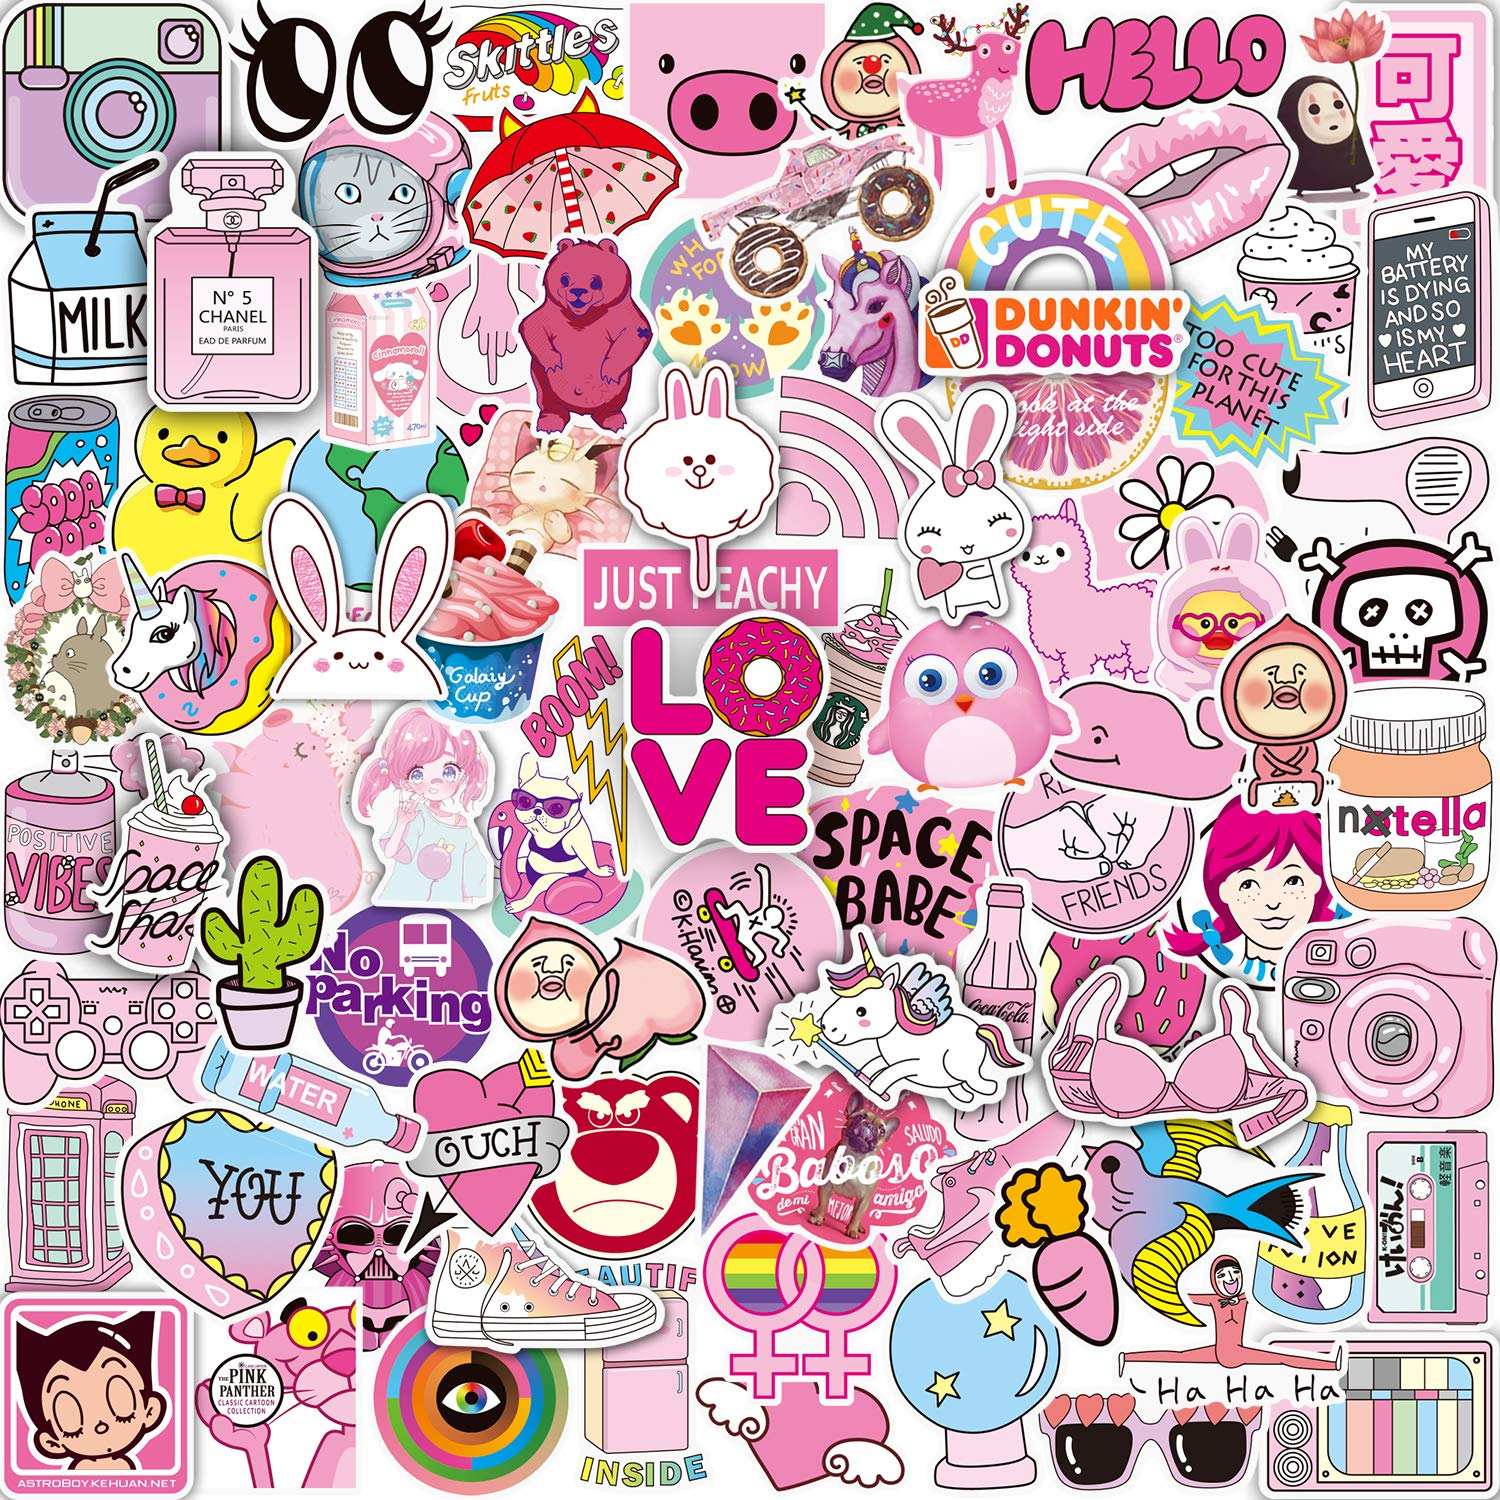 Pink sticker pack 102 pcs vinyl pop cute stickers for laptop skateboardbikeluggageps4xbos oneiphone party favors for teenage girls woman graffiti